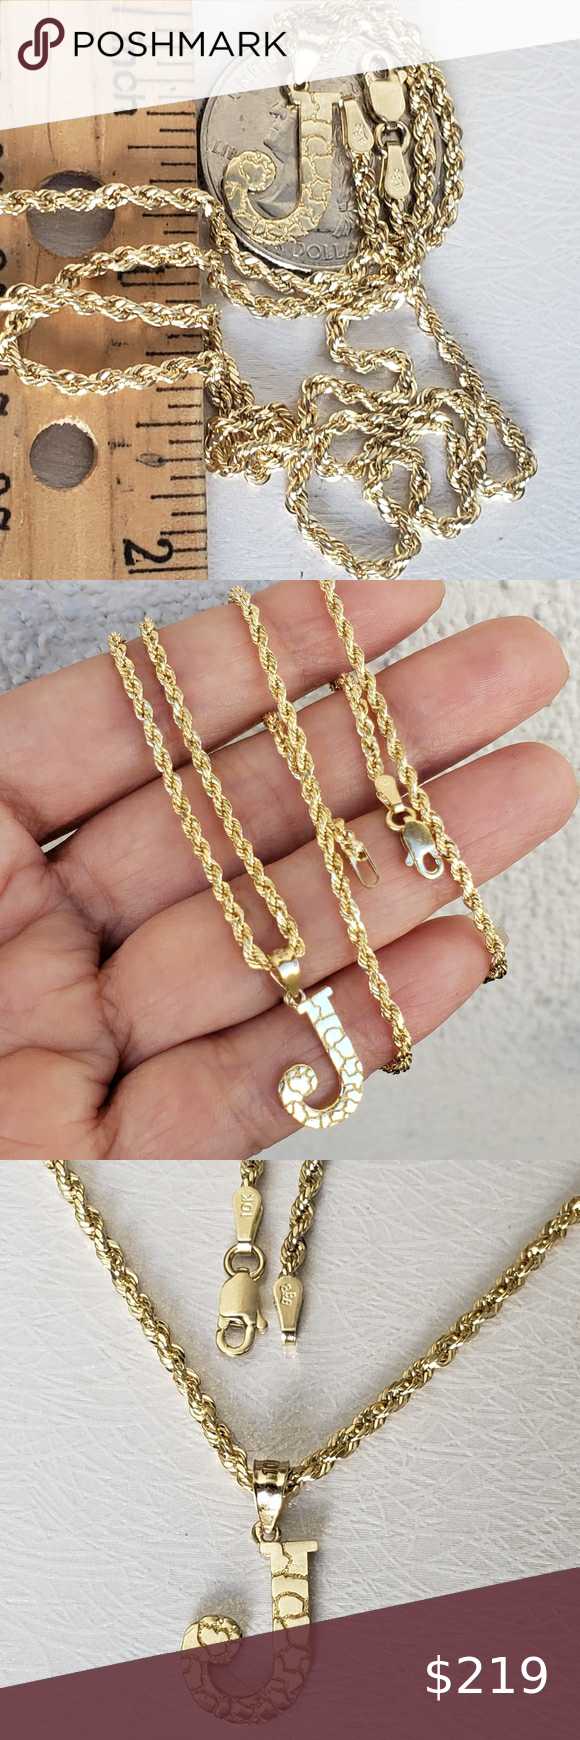 10k Gold Initial J 10k Gold Rope Ch 100 All Real Genuine 10k Gold 2 Piece Chain And Charm Set Set Real 10k Ye In 2020 Gold Initial Womens Jewelry Necklace 10k Gold